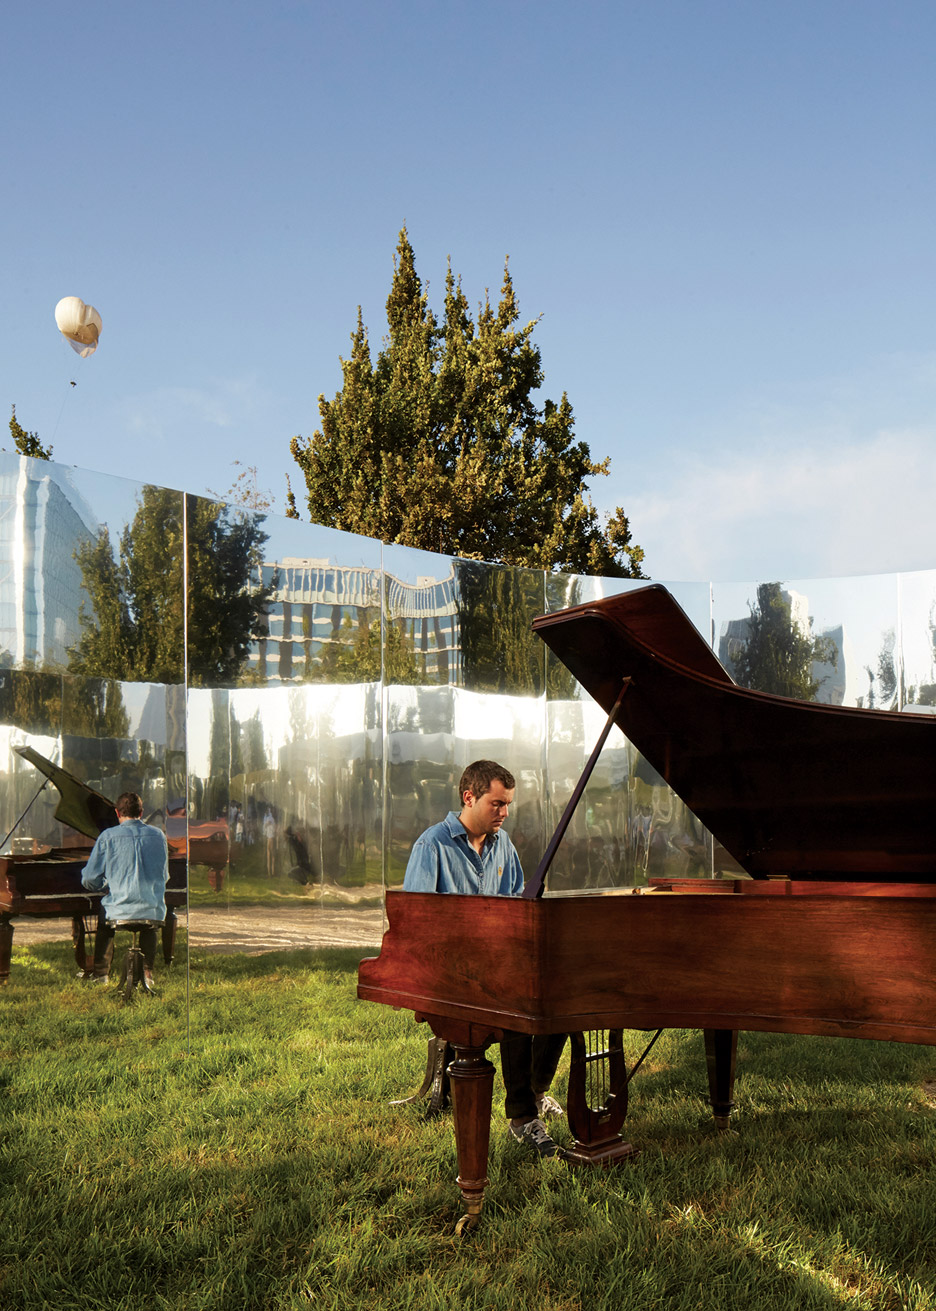 yap-constructo-6-your-reflection-guillermo-hevia-garcia-nicolas-urzua-pavilion-architecture-installation-mirrors-santiago-chile_dezeen_936_2